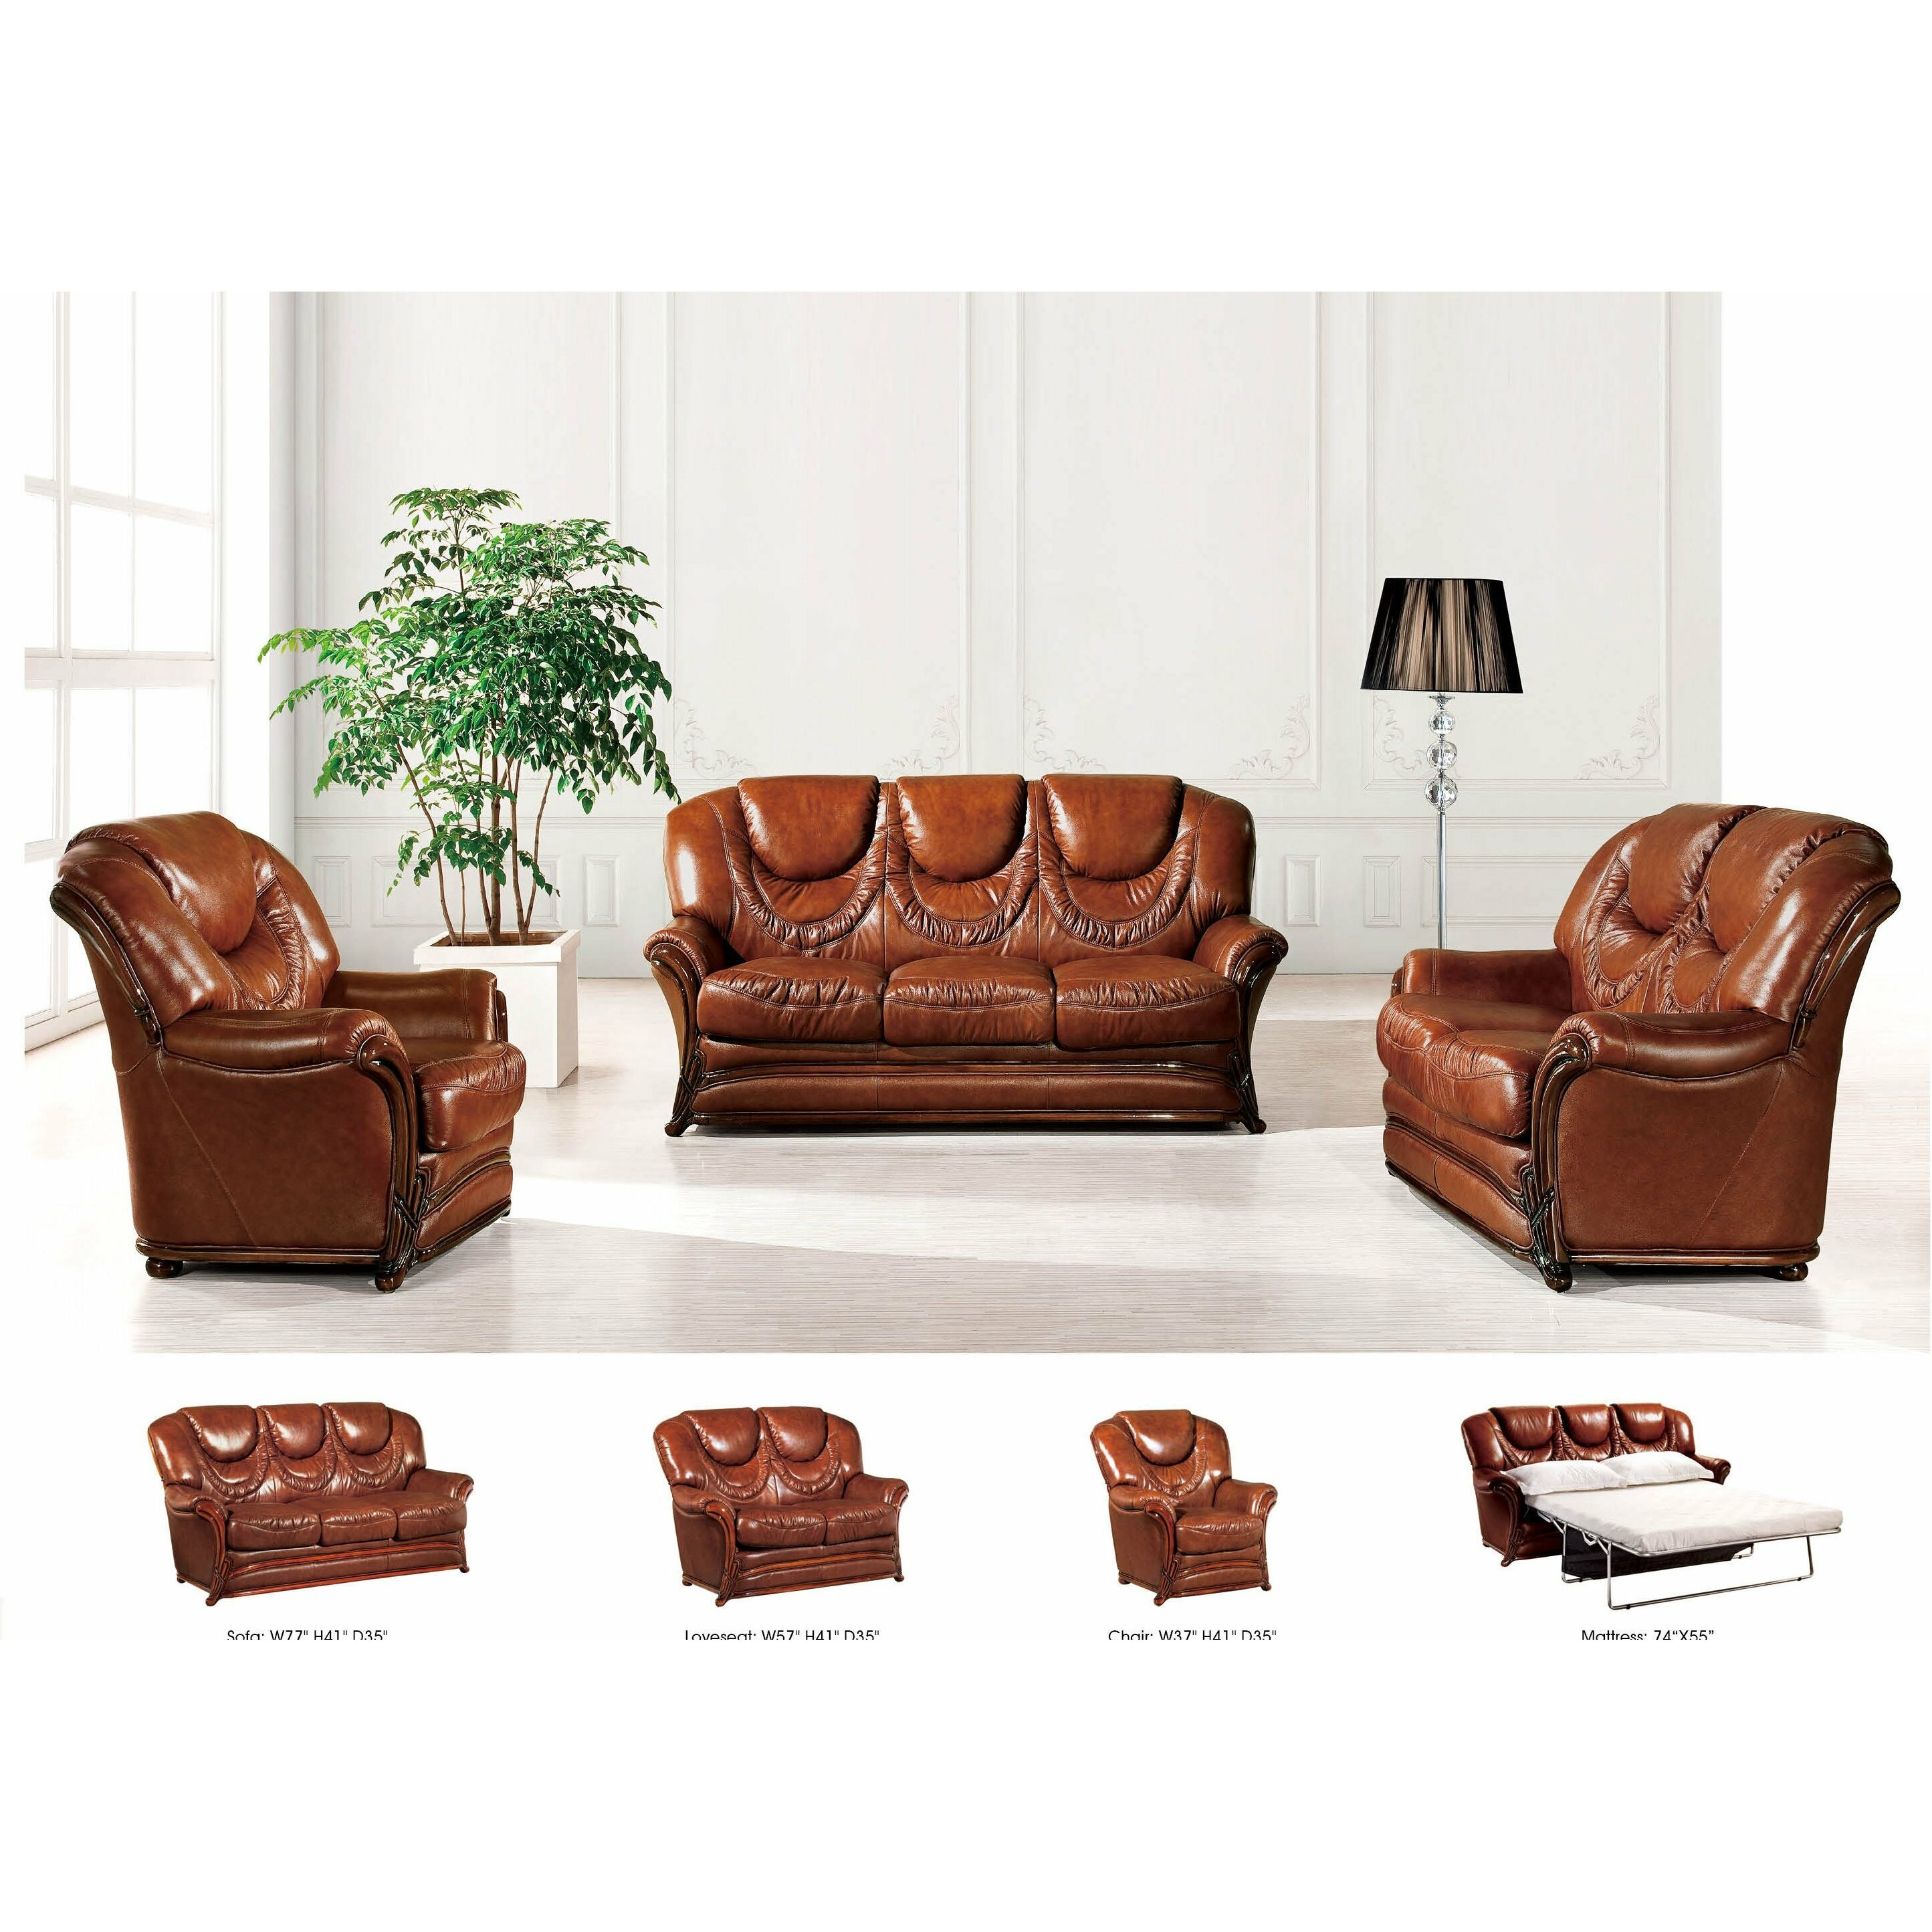 Nocidesign 3 piece leather living room set wayfair for Leather living room sets